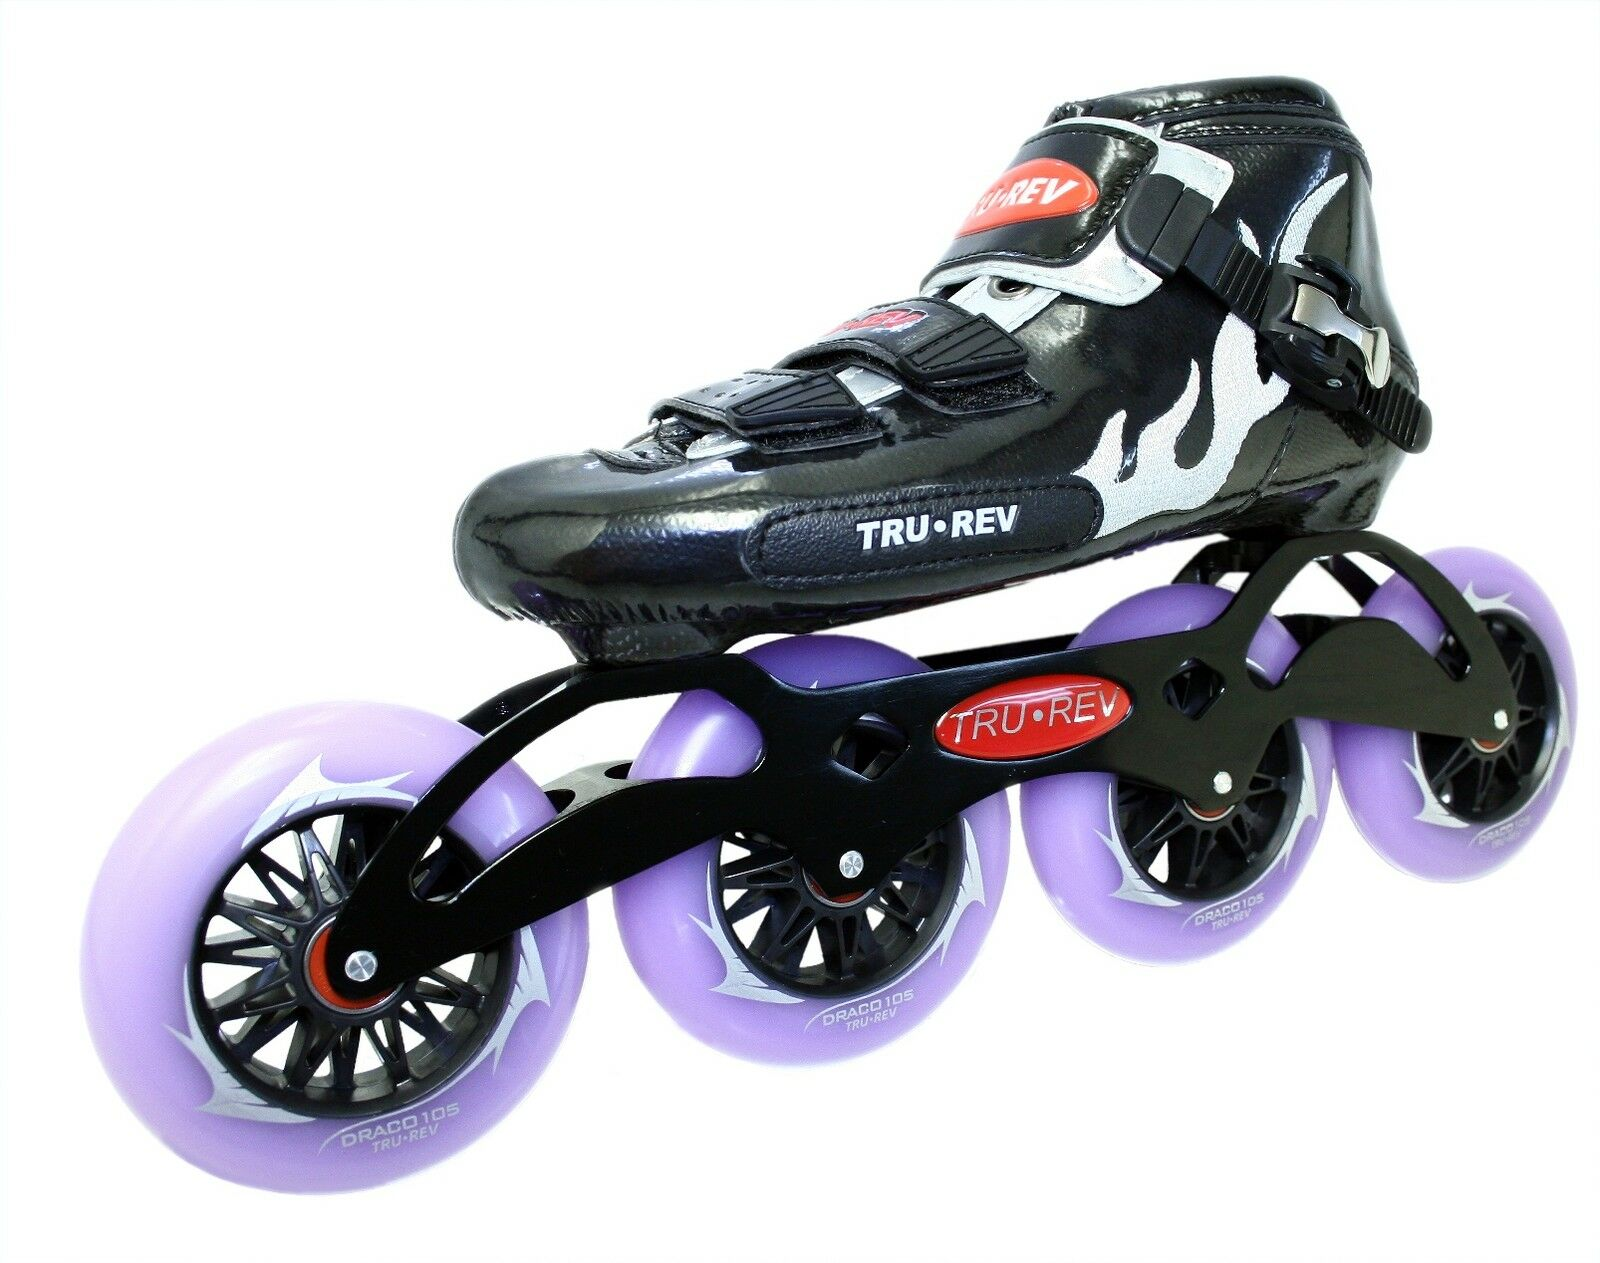 Inline Speed Skates by Trurev. 3 or 4 wheel skate frame,ceramic bearings